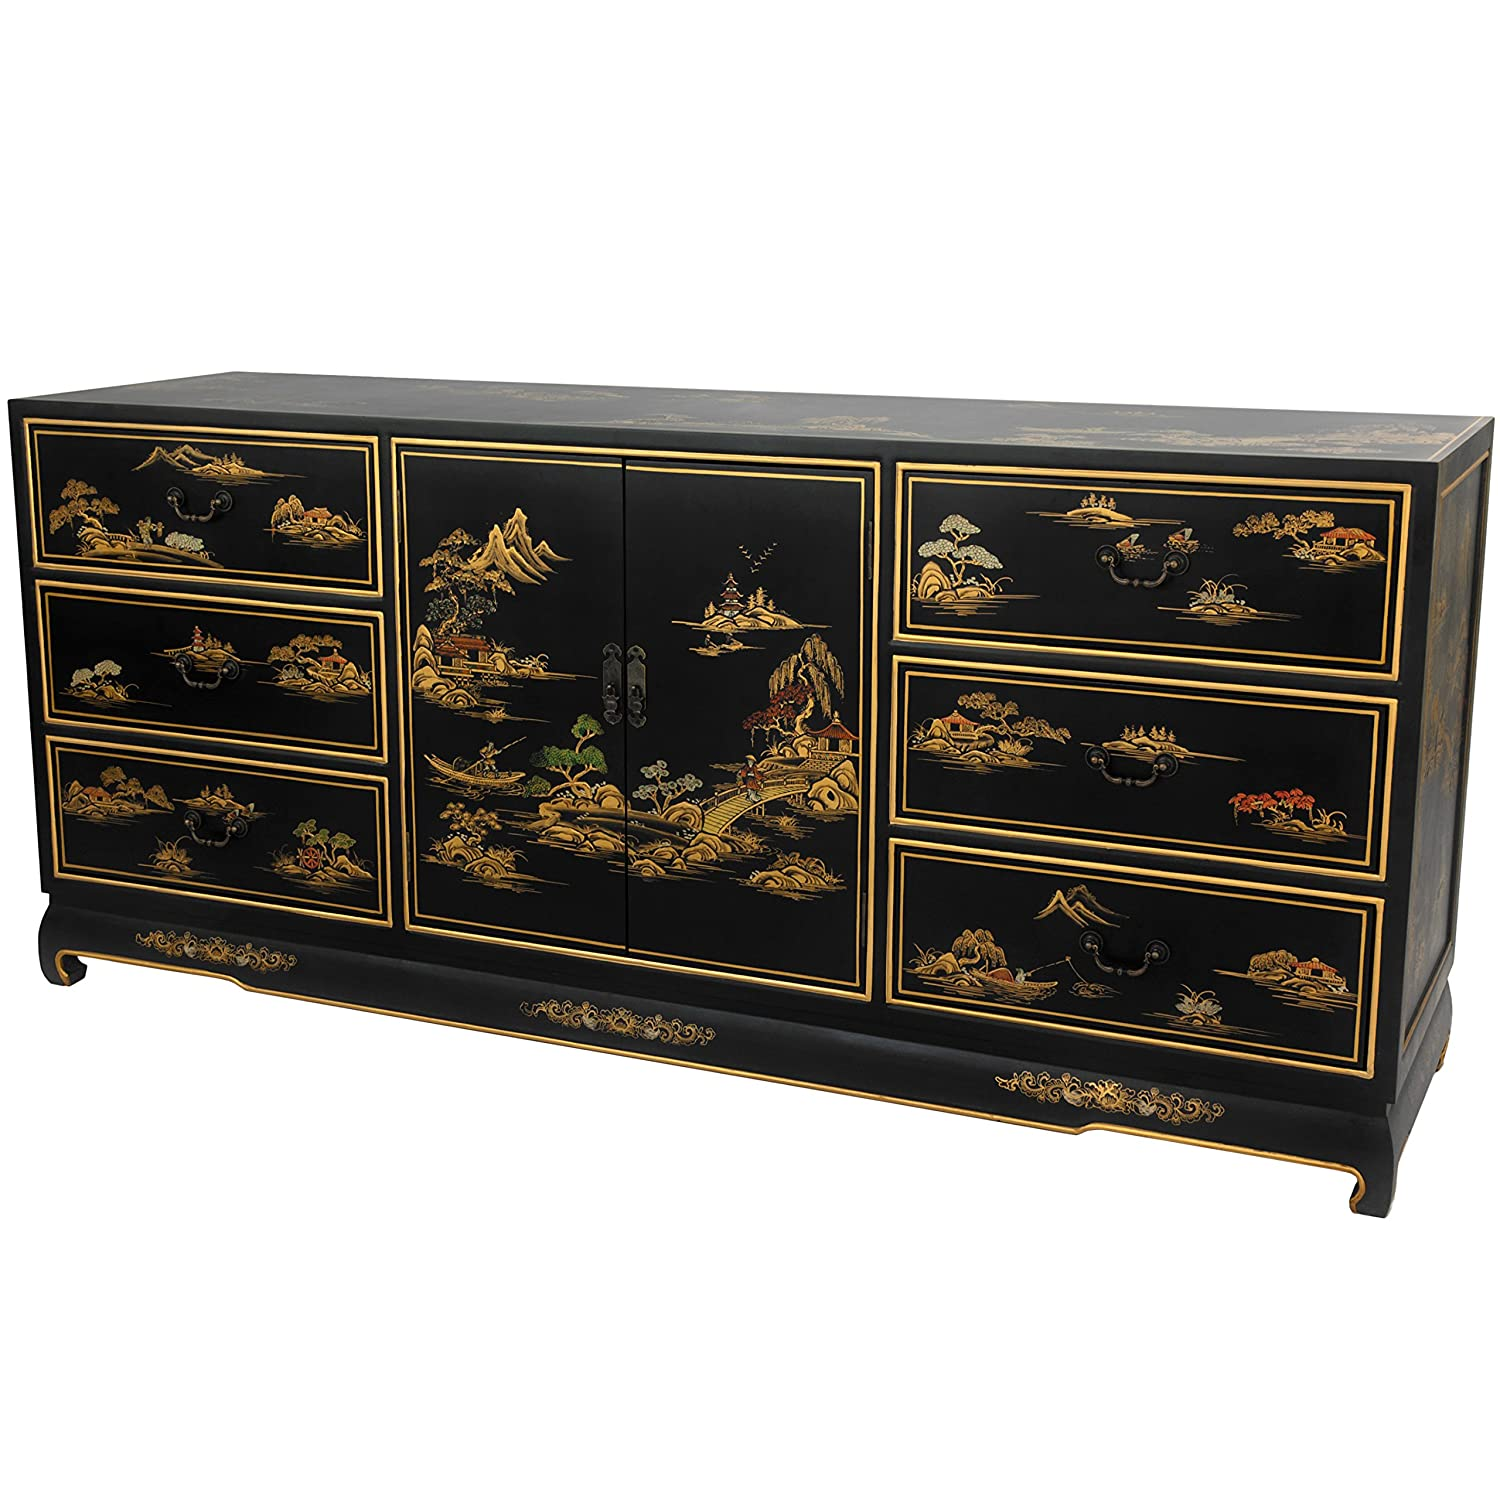 amazoncom oriental furniture black lacquer dresser  kitchen  - amazoncom oriental furniture black lacquer dresser  kitchen  dining